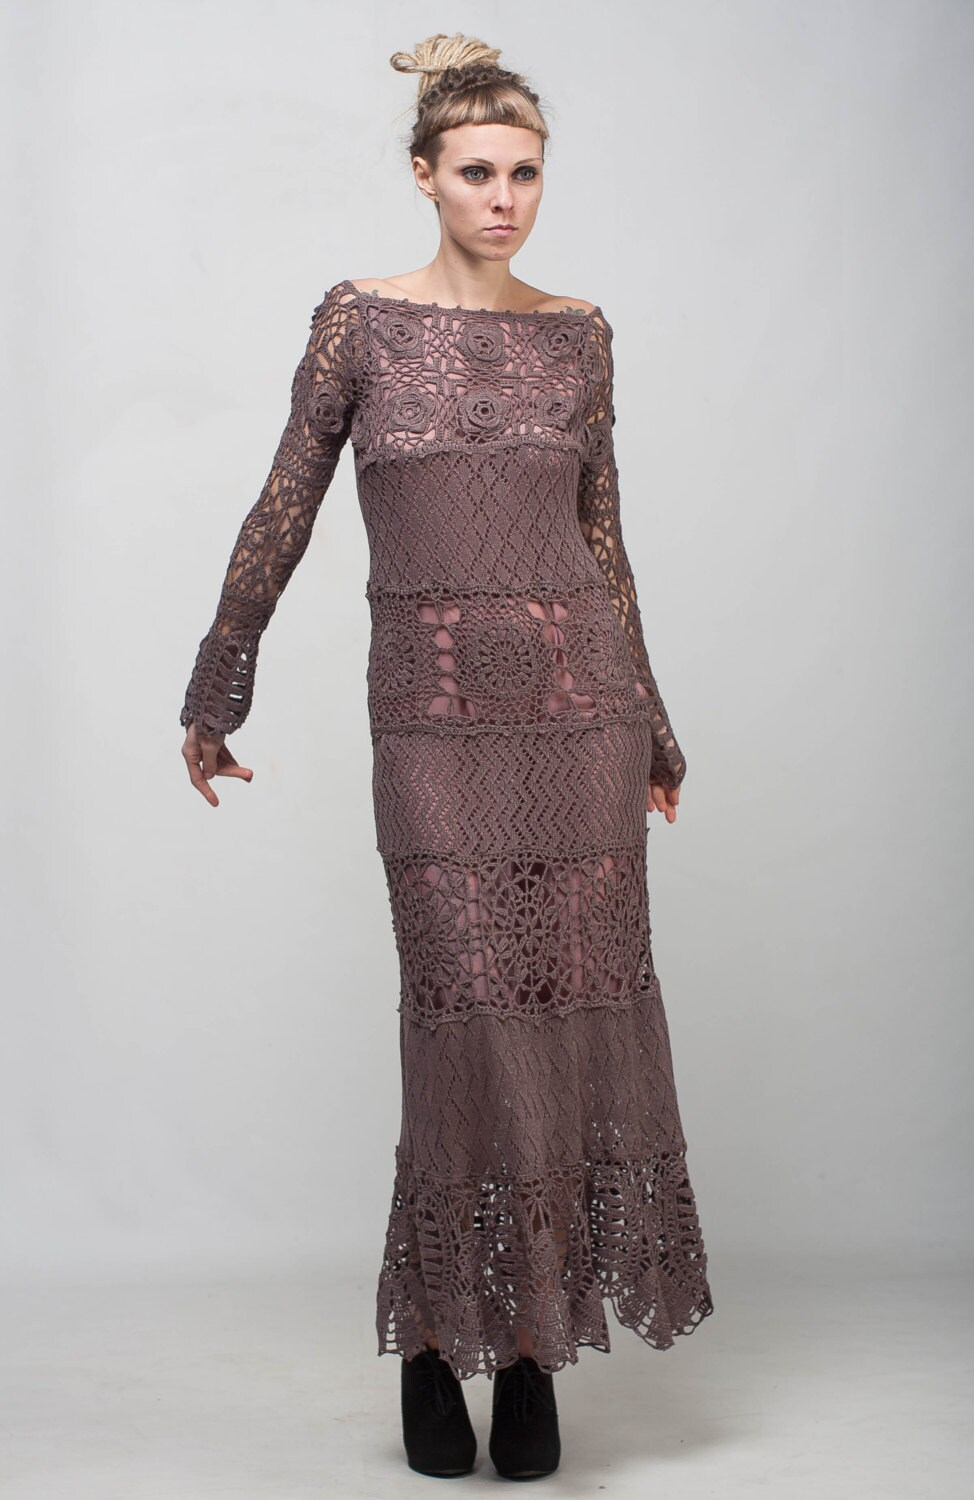 Formal Crochet Dress Mocha Lace Dress Maxi Long Sleeve Dress Etsy